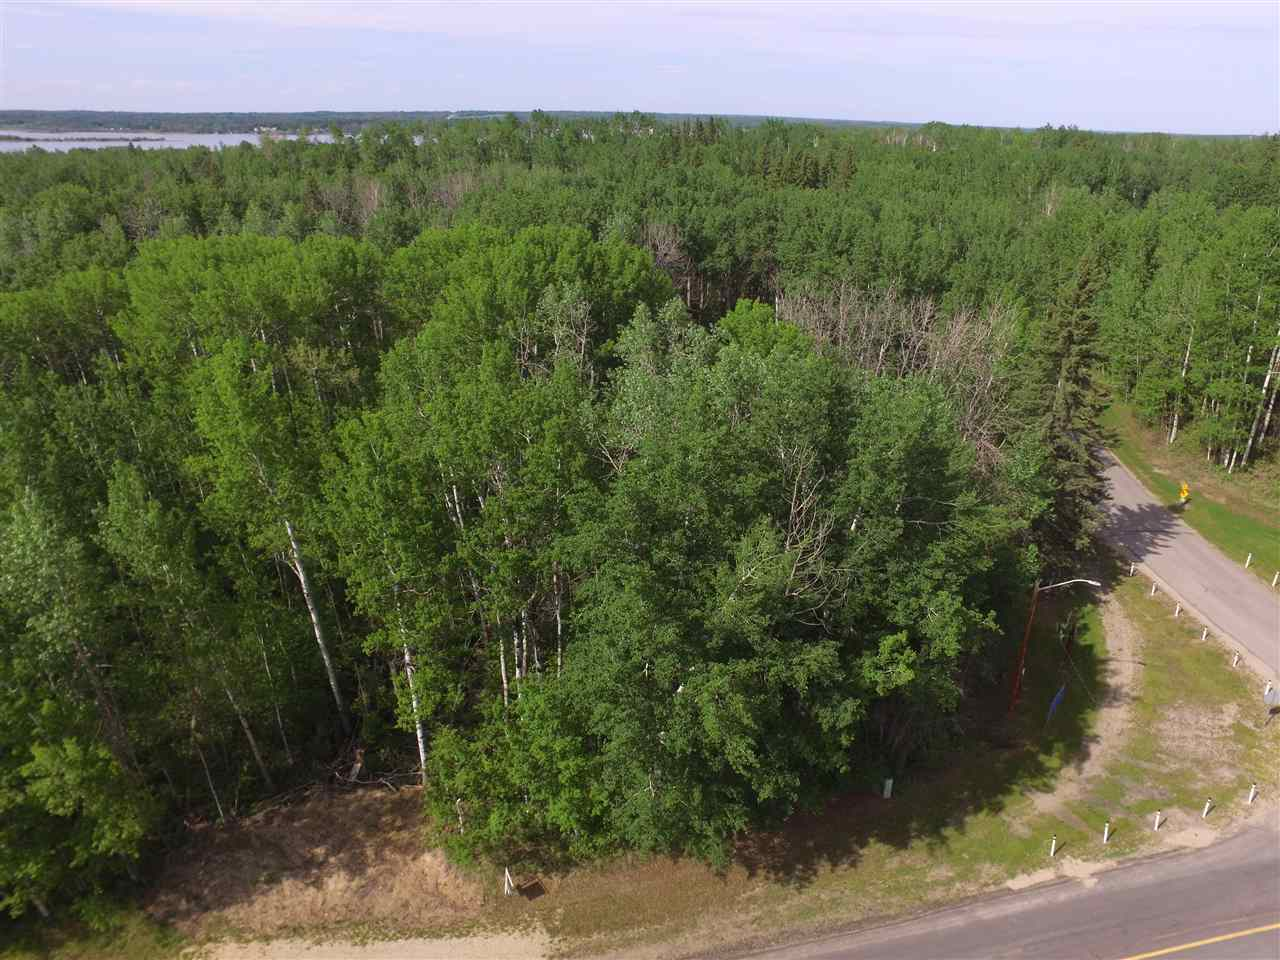 PRICE REDUCED $10,000! Investor Alert! Rare opportunity to own 14.55 acres with LAKE VIEWS in the Summer Village of Silver Sands! Beautiful parcel of land located just steps from the lake. Fully treed and rolling landscape provides many opportunities for development or the perfect getaway with very private setting. North boundary backs onto environmental reserve and the lake! The Summer Village of Silver Sands is located just 45 minutes from Edmonton and is located on Lake Isle. The village boasts a 18 hole golf course, playground, community BBQ area, boat launch, walking trails, and abundance of wildlife. Pavement right to driveway!